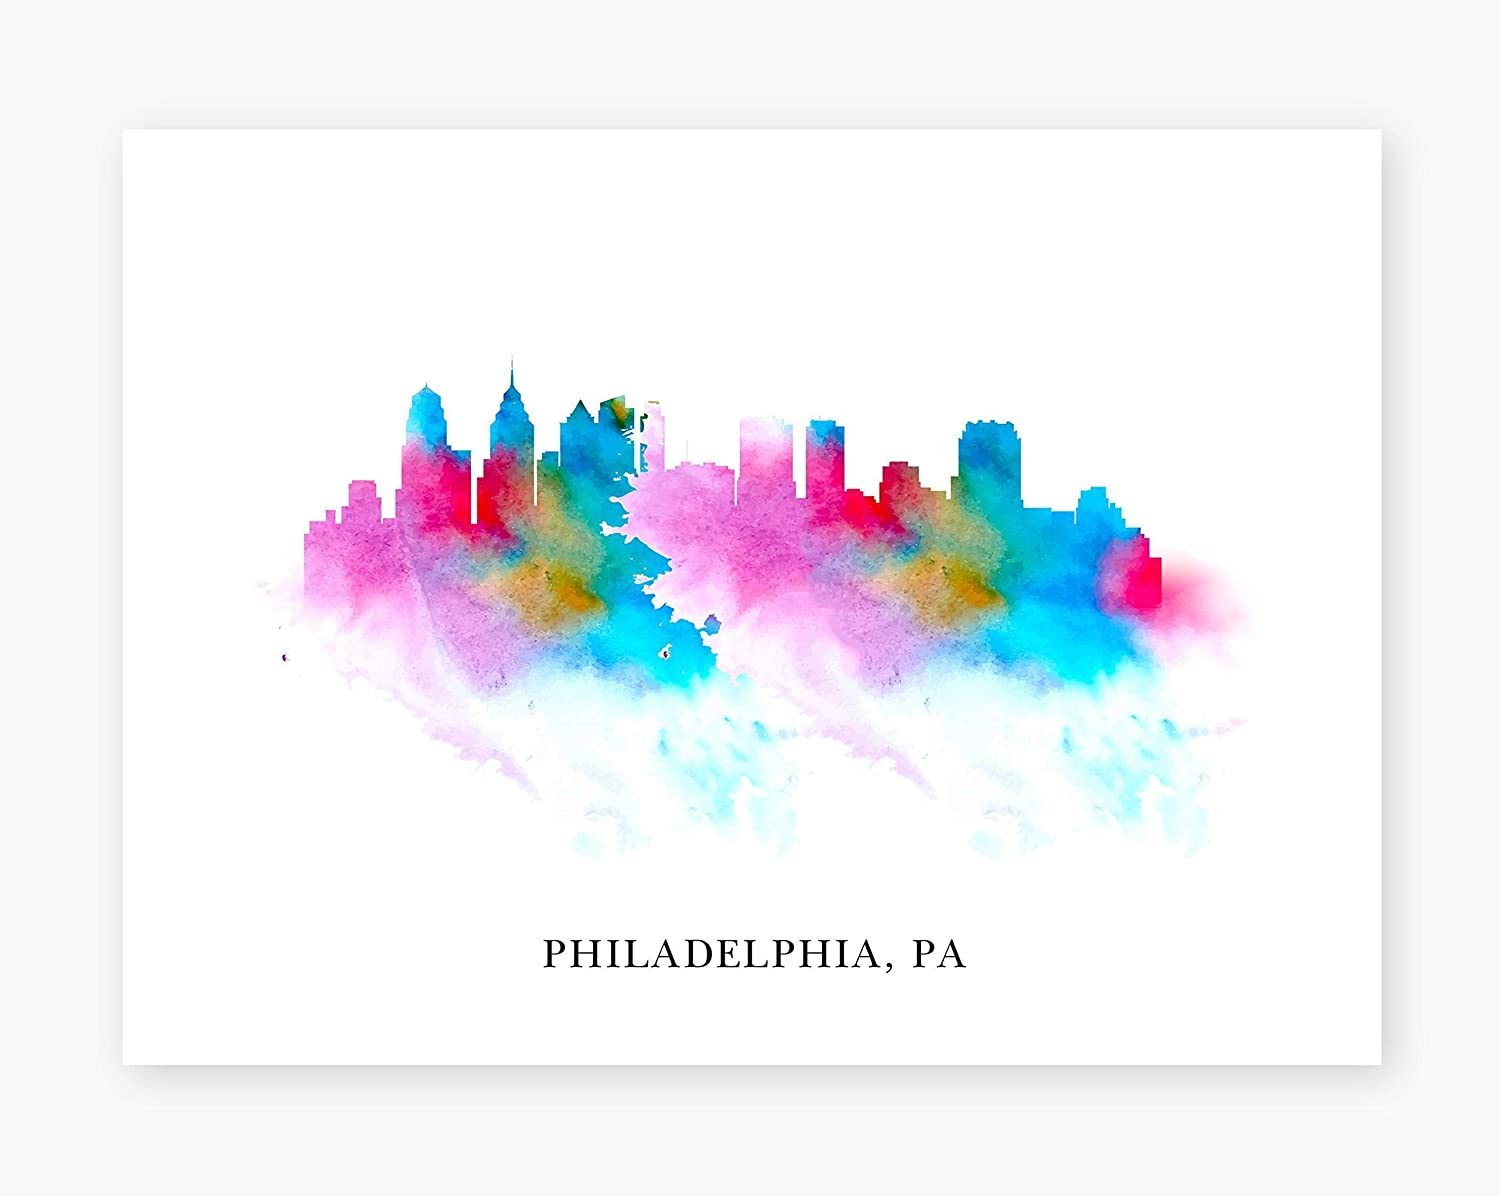 Philadelphia Cityscape Skyline Wall Art Room Super special In stock price a Print Ideal for